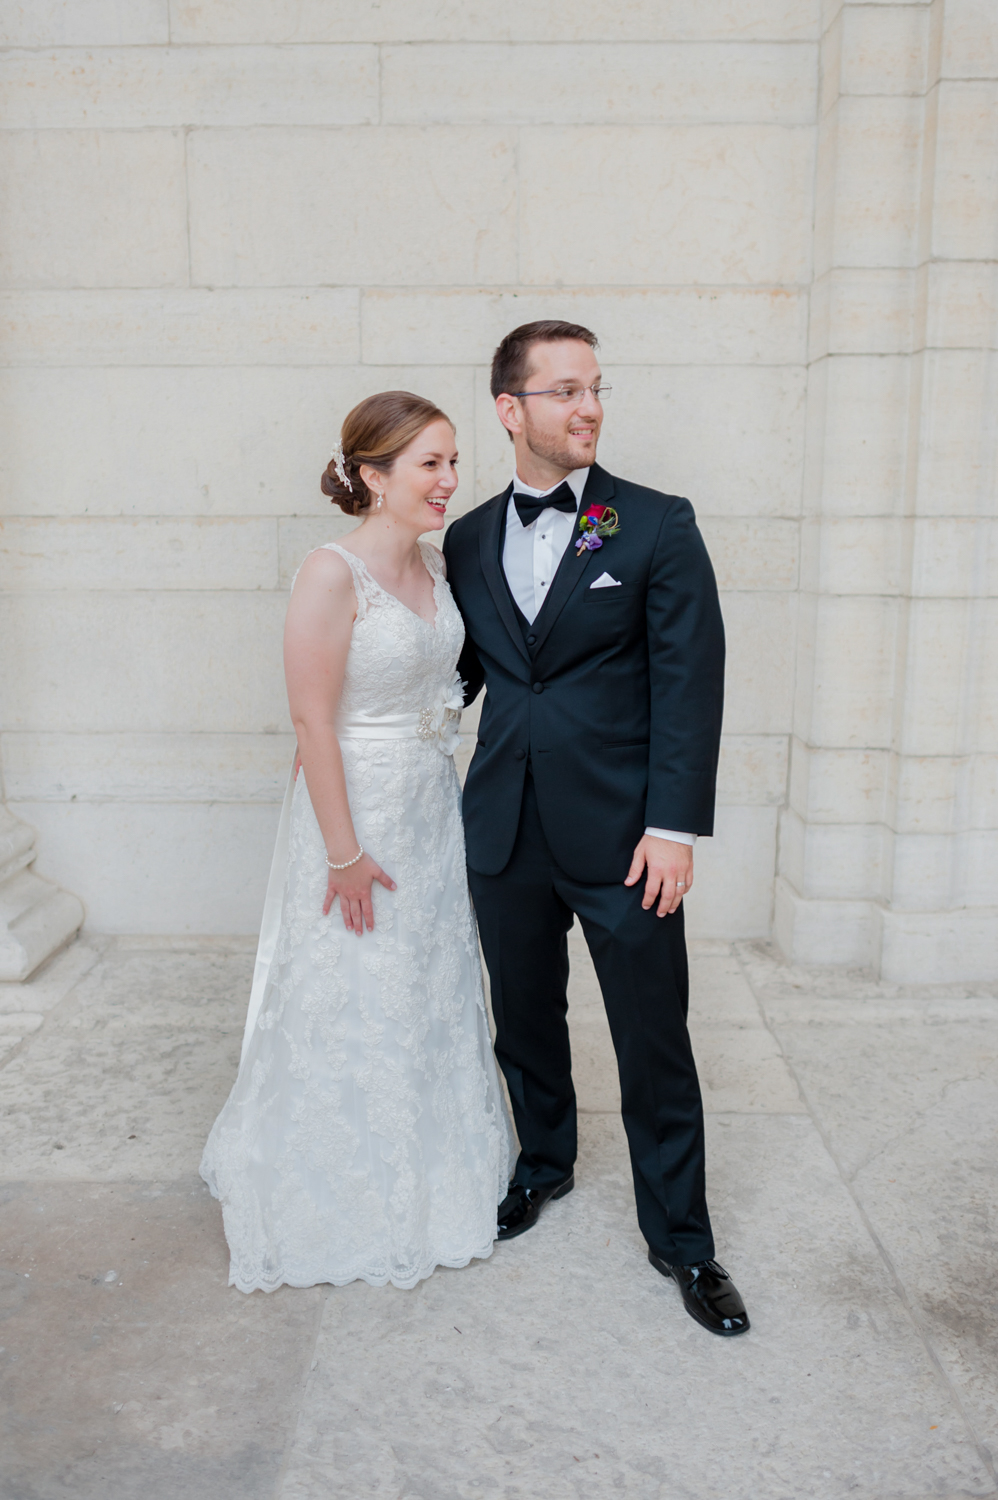 Old Courthouse Wedding by Andrea Dozier in Dayton, Ohio